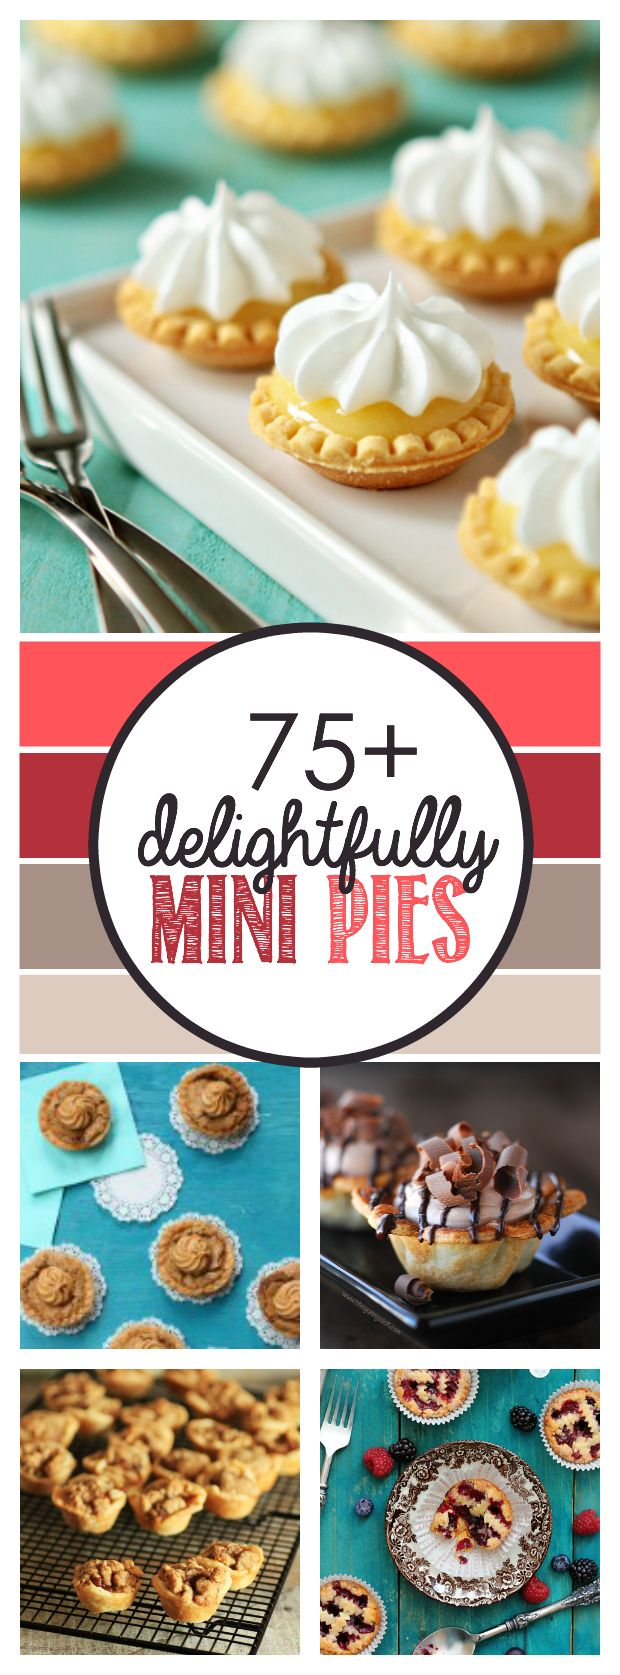 Over 75 recipes for miniature pies, perfect for the holidays!